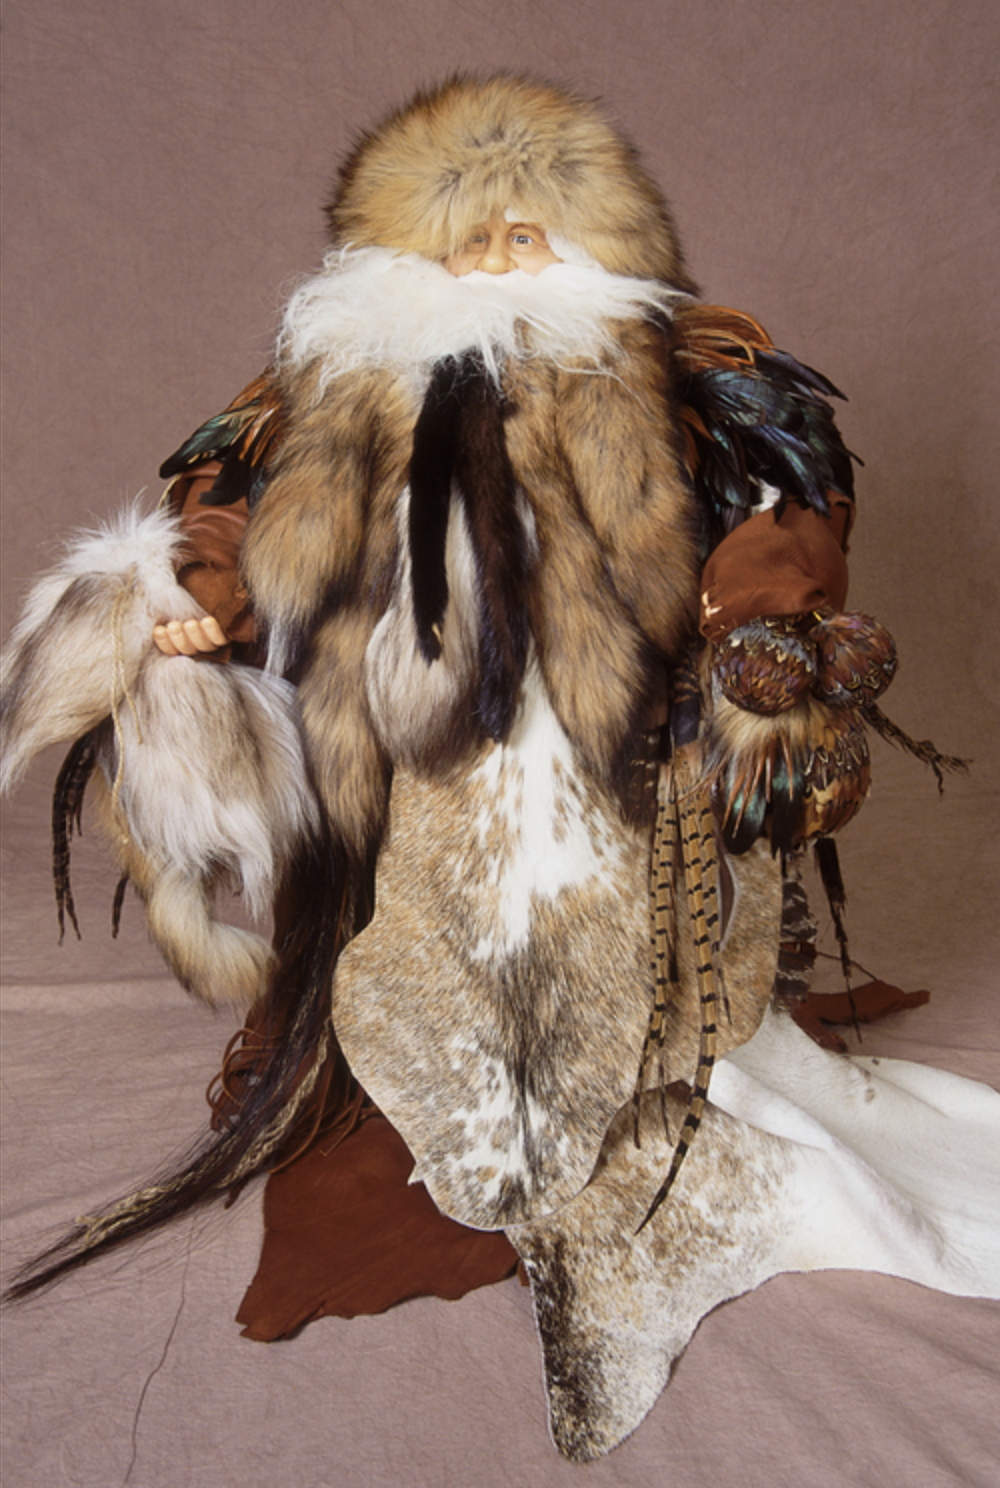 Anita Baptiste - Fiber mixture from animal skin & bird feathers. Final details consist of other animal skins & beads.